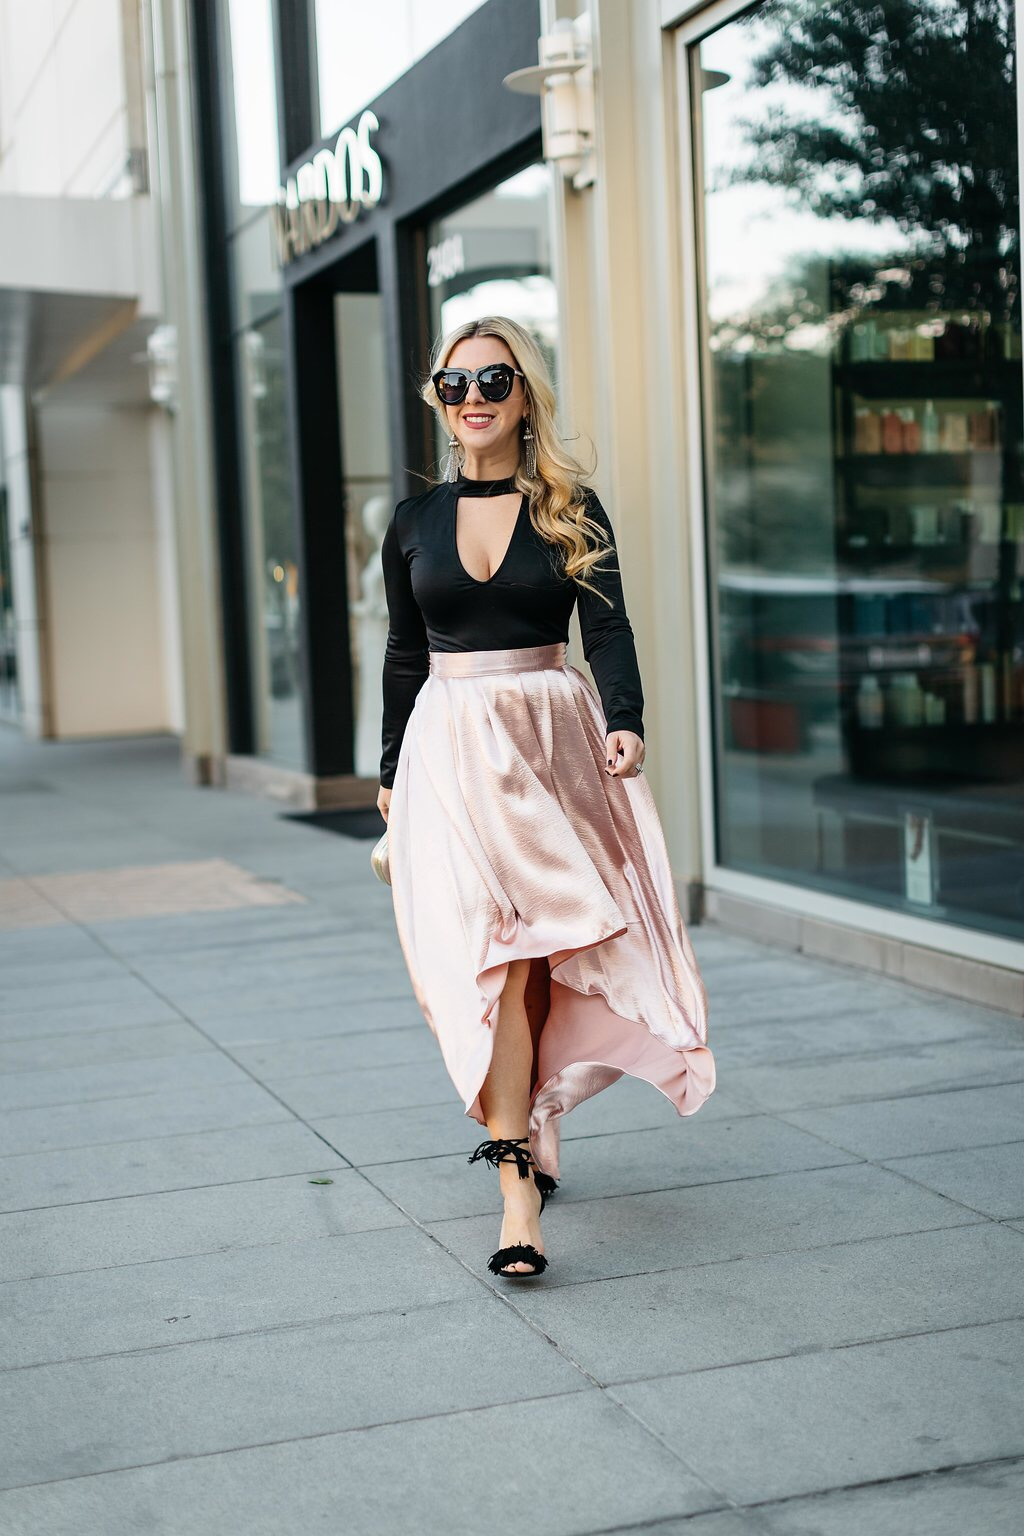 Pink Pleated Skirt | The Darling Petite Diva | Nicole Kirk